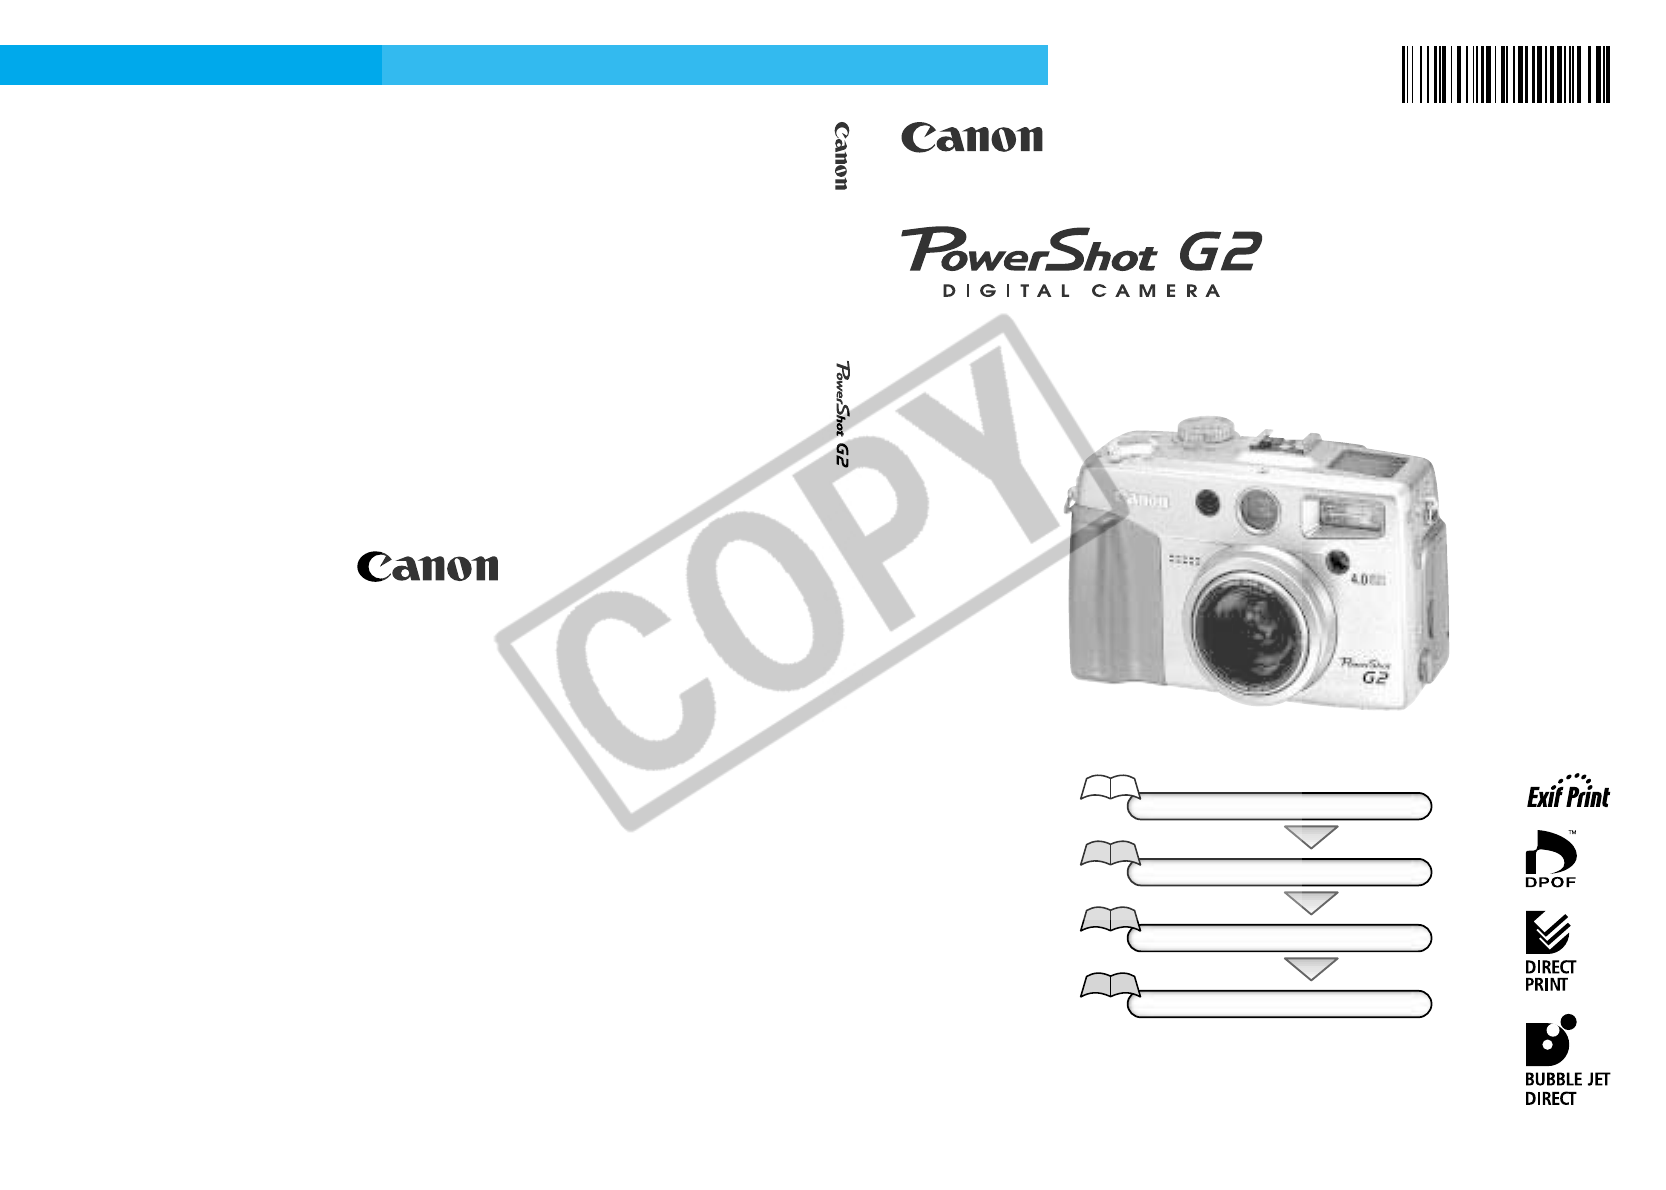 Canon Digital Camera G2 (PC1015) User Guide